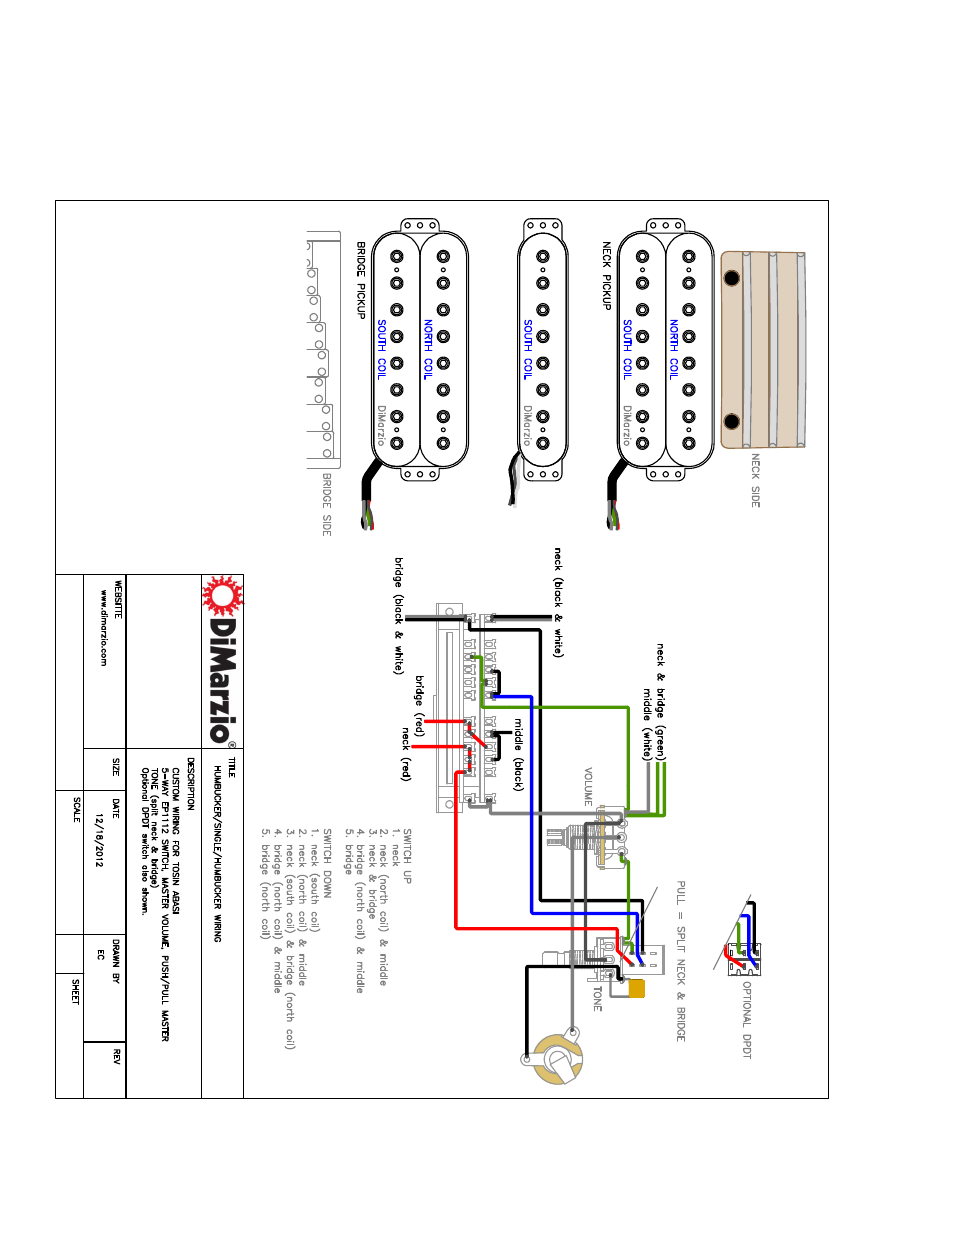 Dimarzio Ionizer 8 Neck User Manual 2 Pages Also For Humbucker Wiring Diagram Middle Bridge